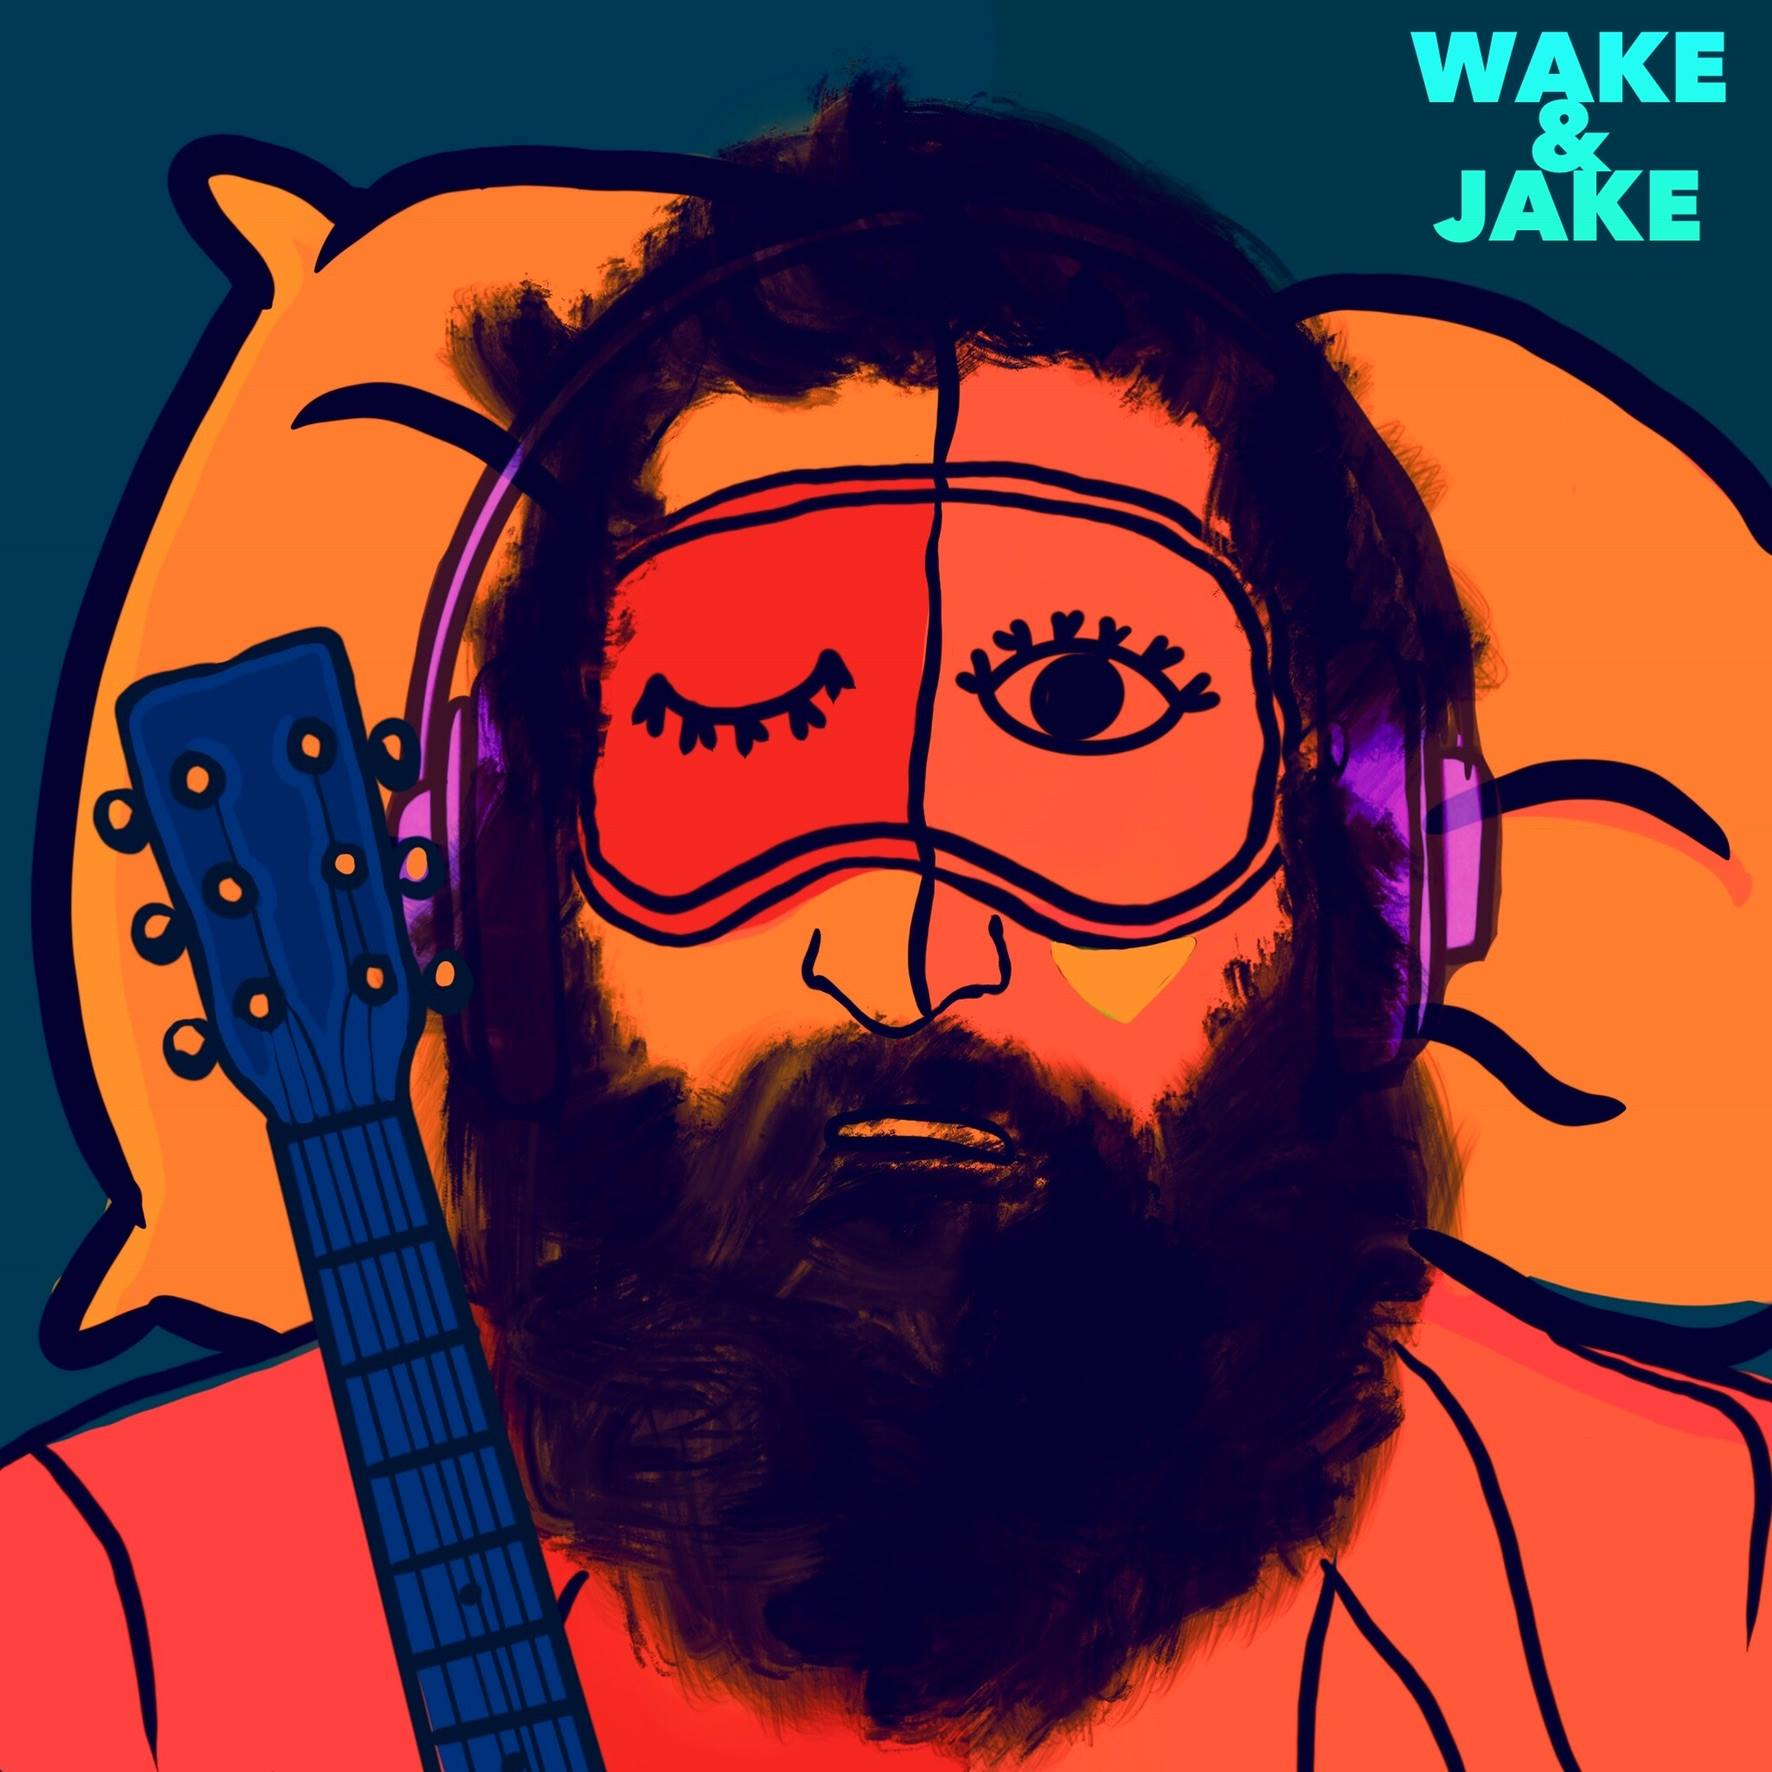 Wake & Jake - Wake & Jake is a show for those seeking a new Monday morning ritual. Wake up with Jake as he improvises some soothing music, and gets your week started right.